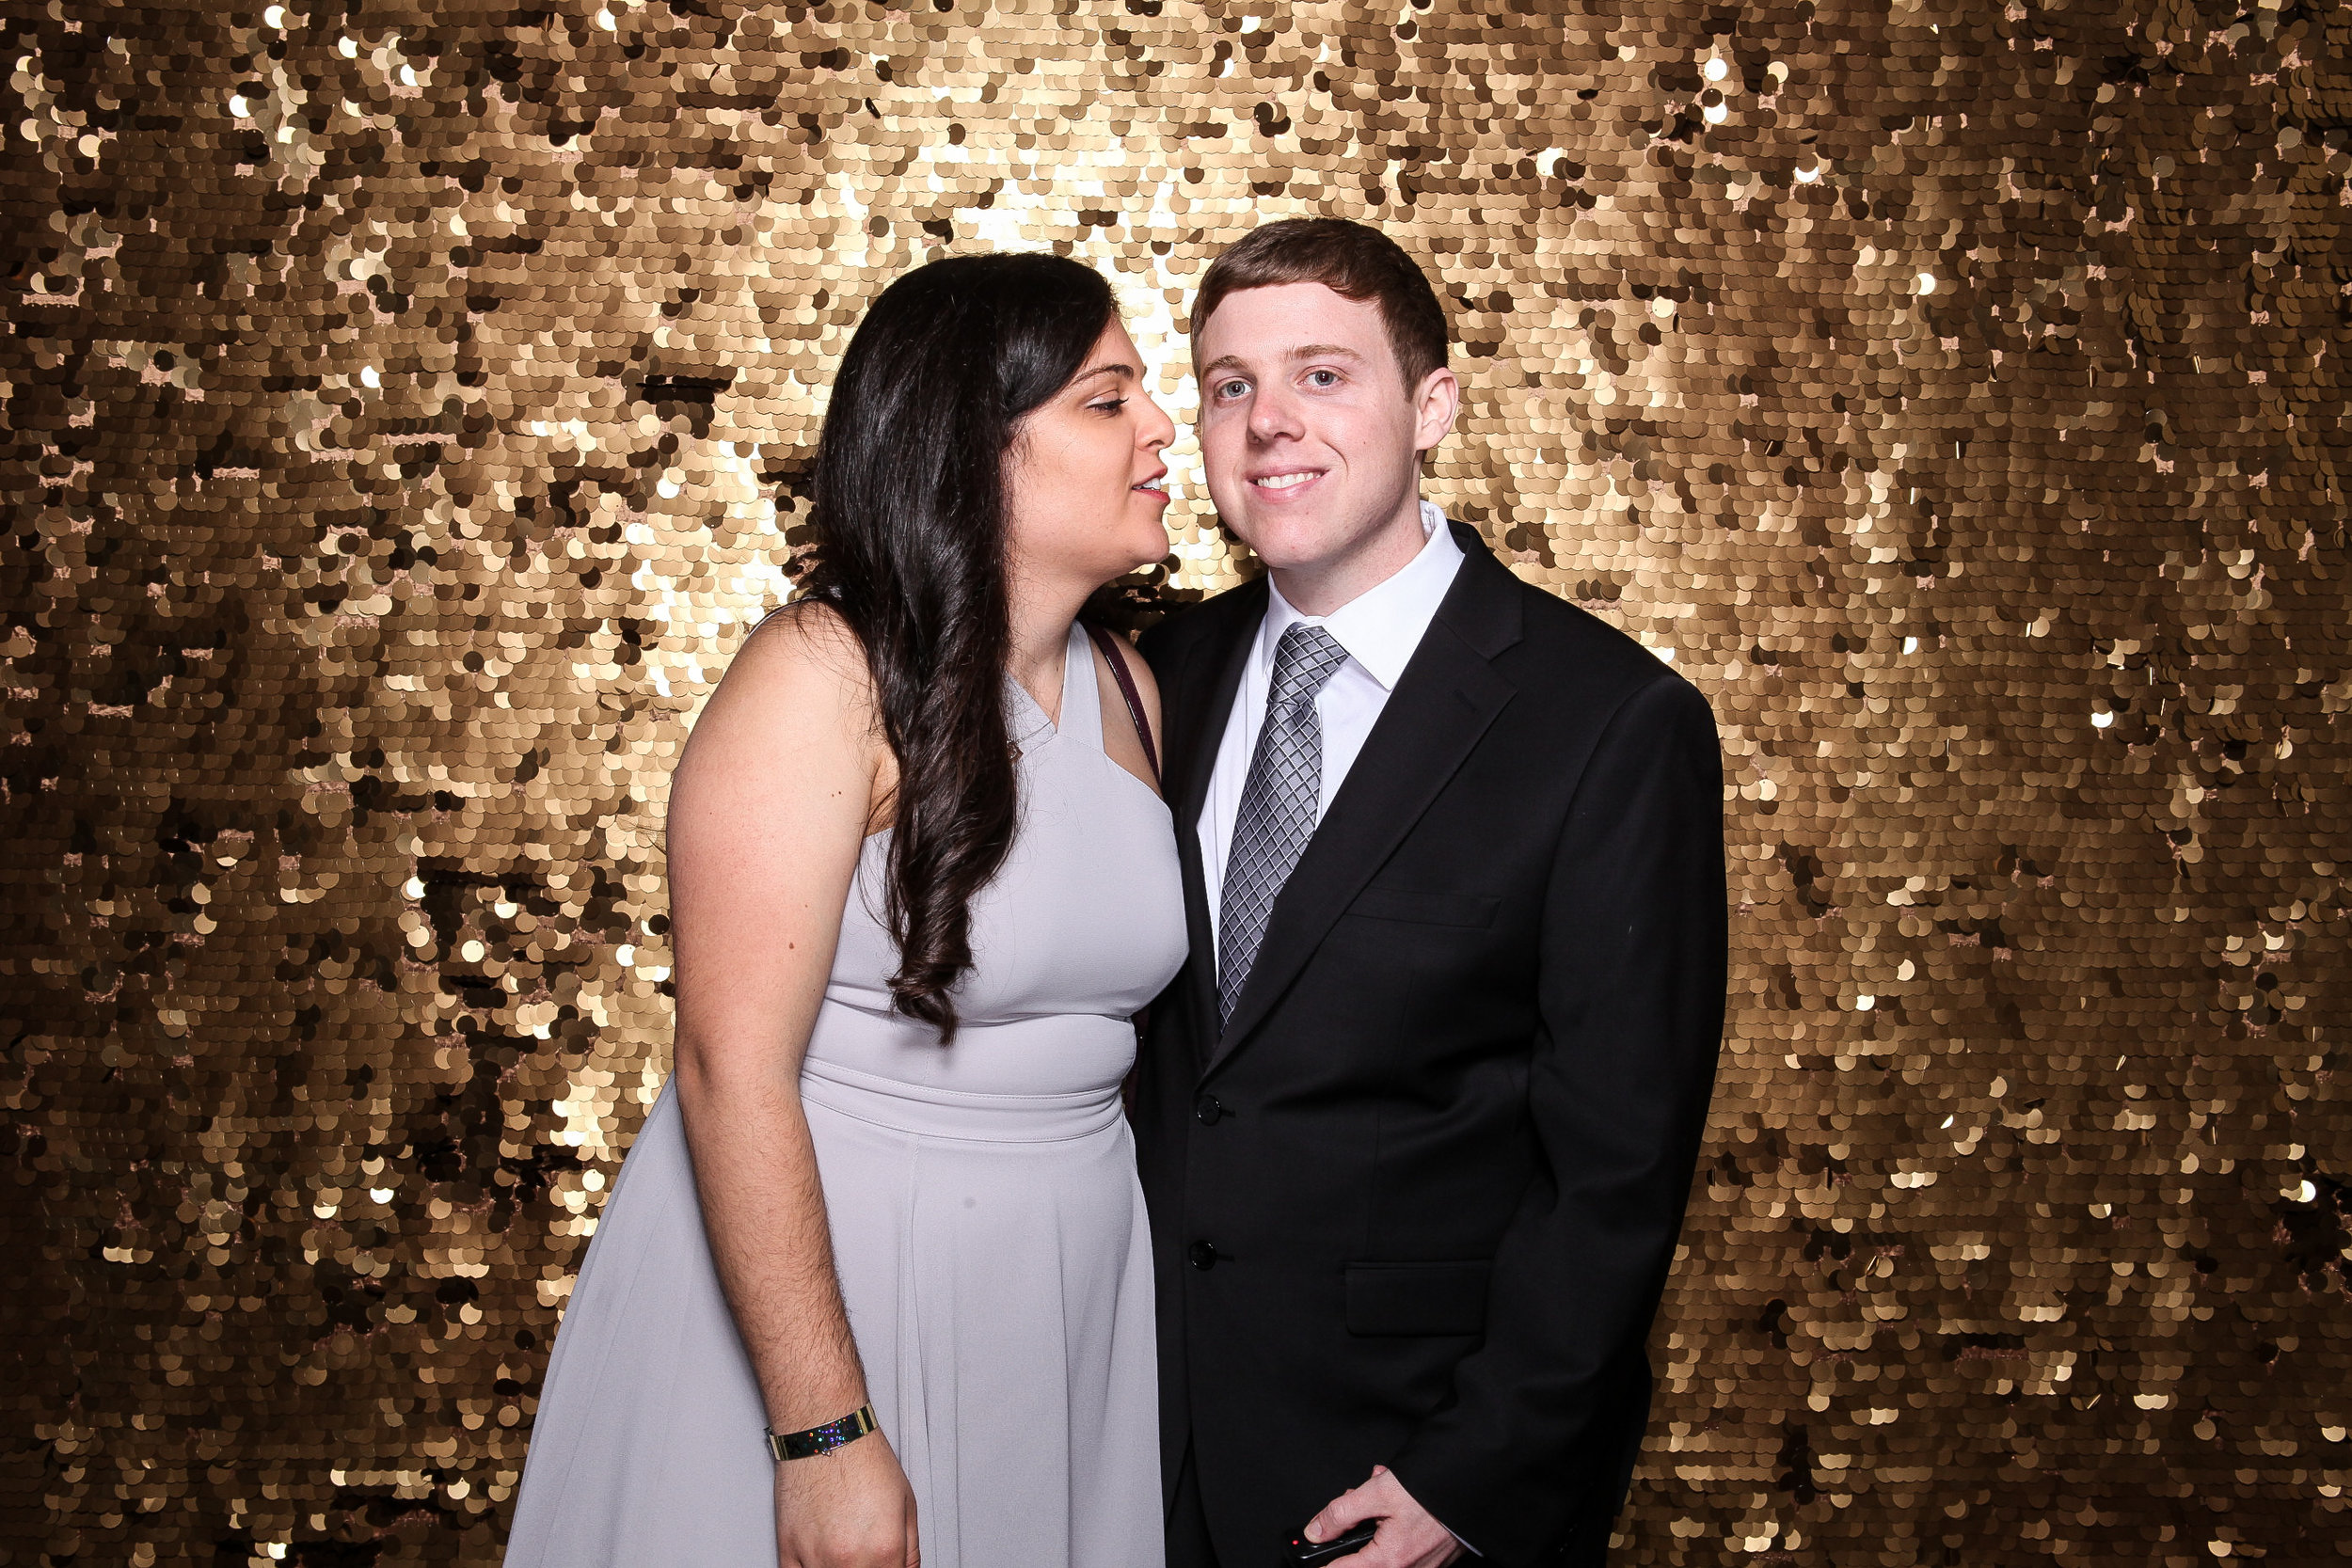 20190503_Adelphi_Senior_Formal-113.jpg